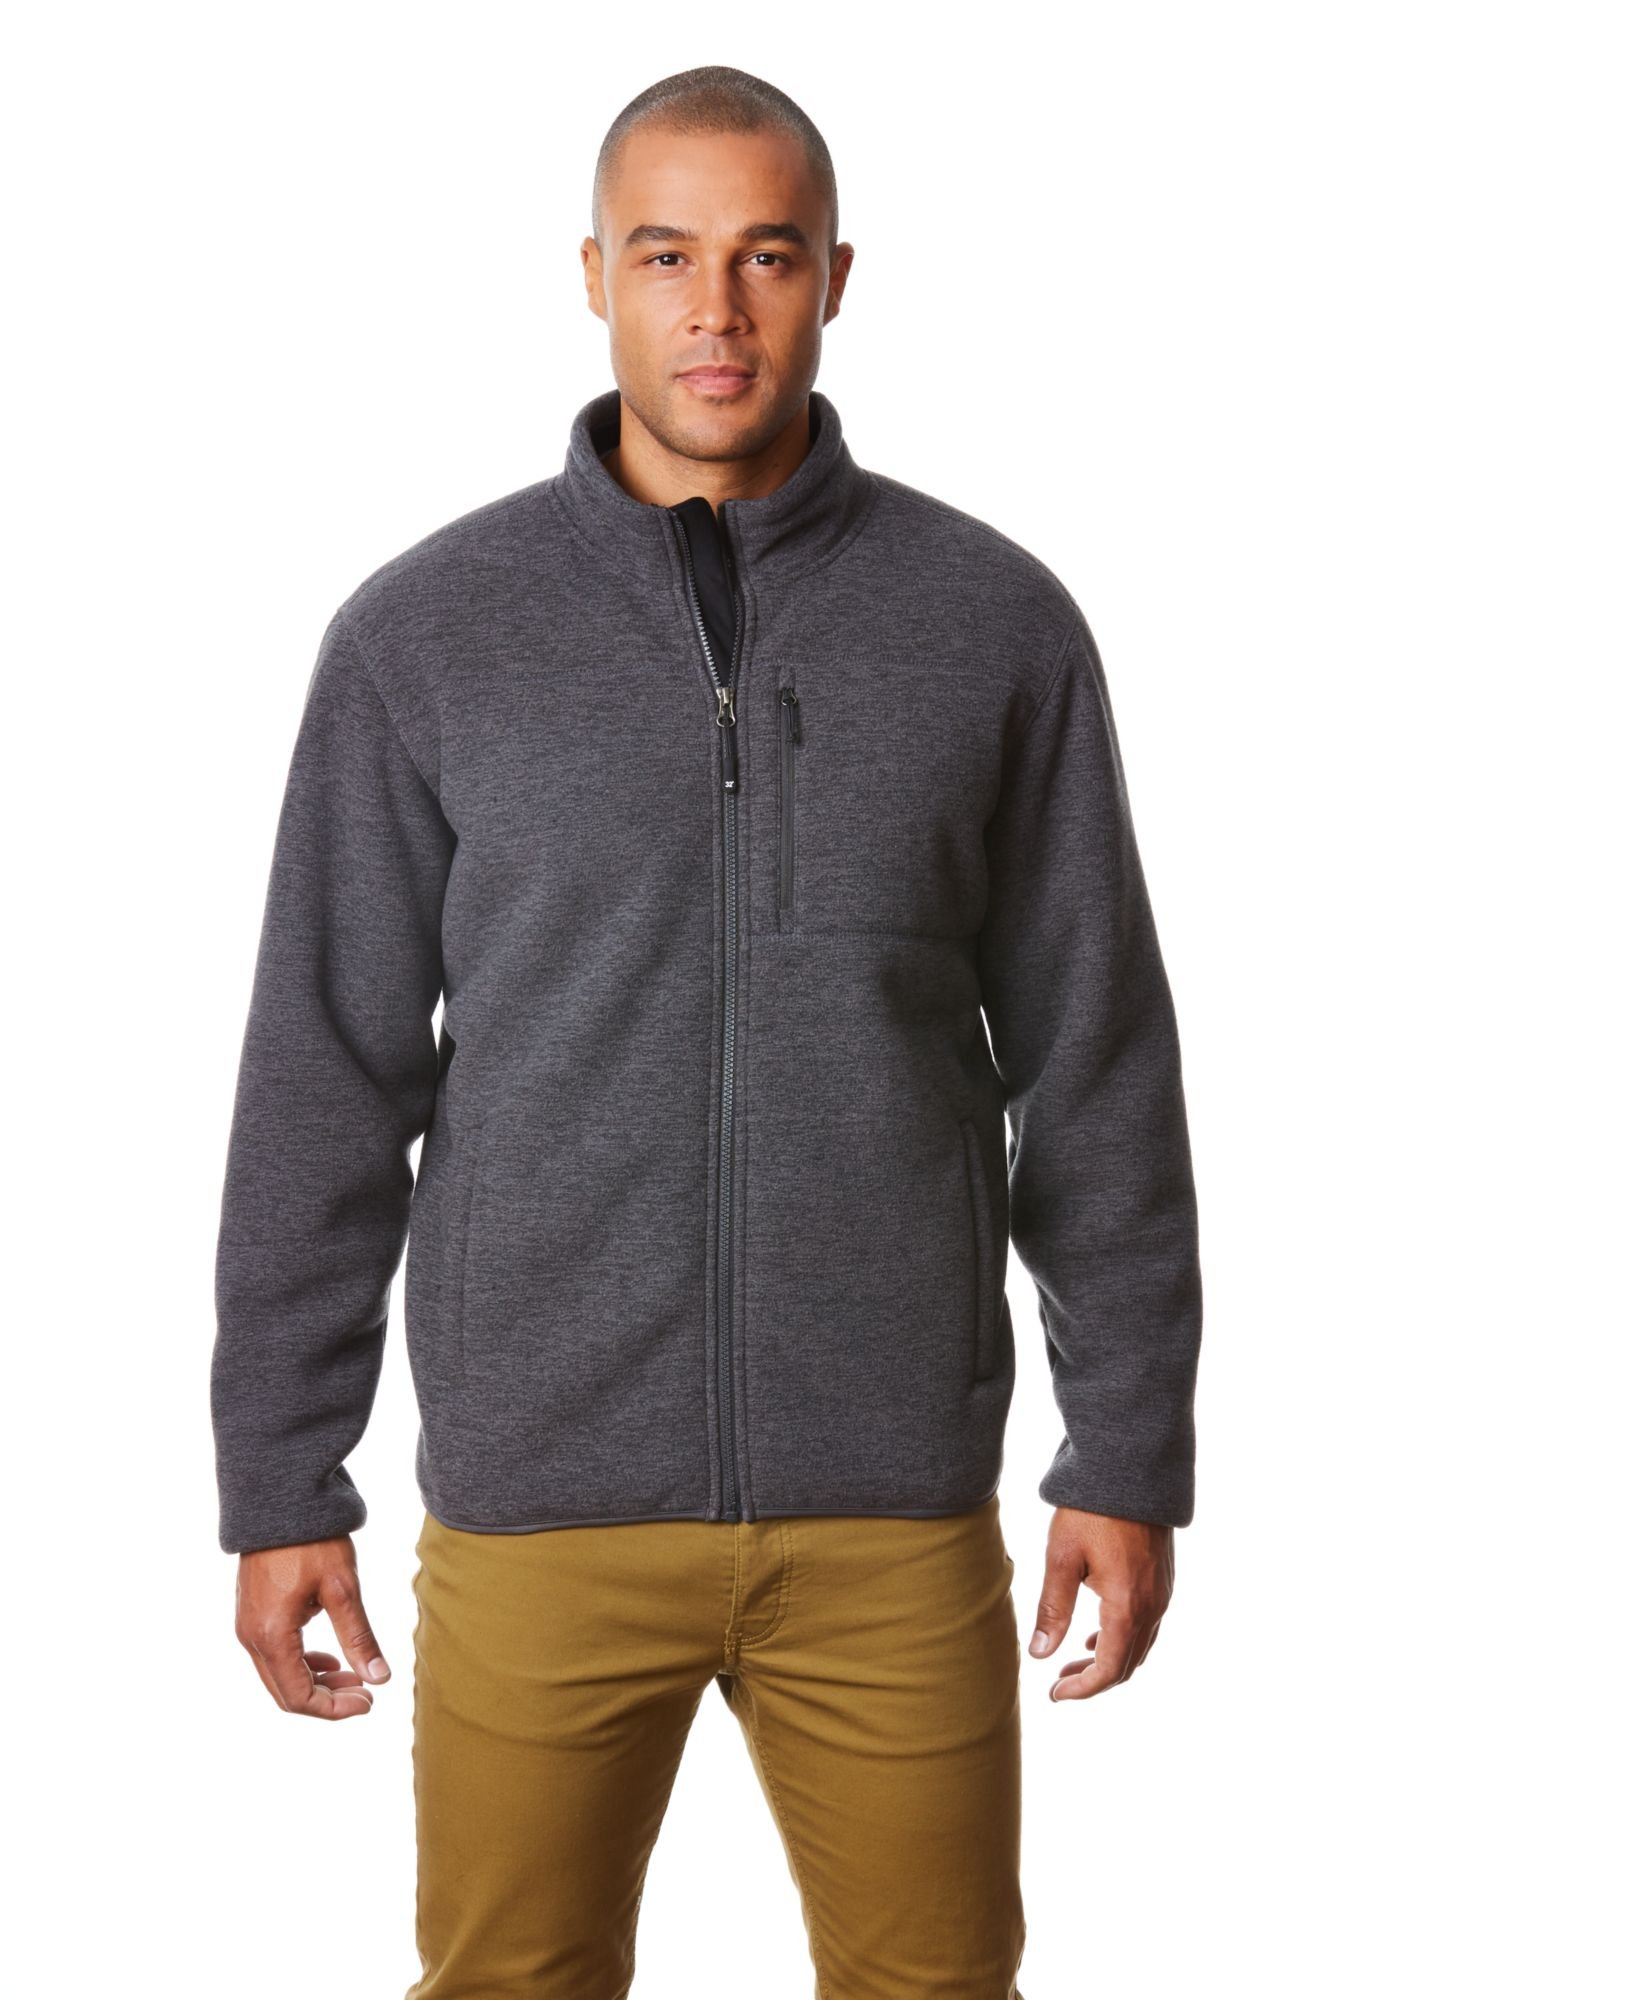 32 DEGREES Men's Fleece Sherpa Jacket, Dark Heather Charcoal, M